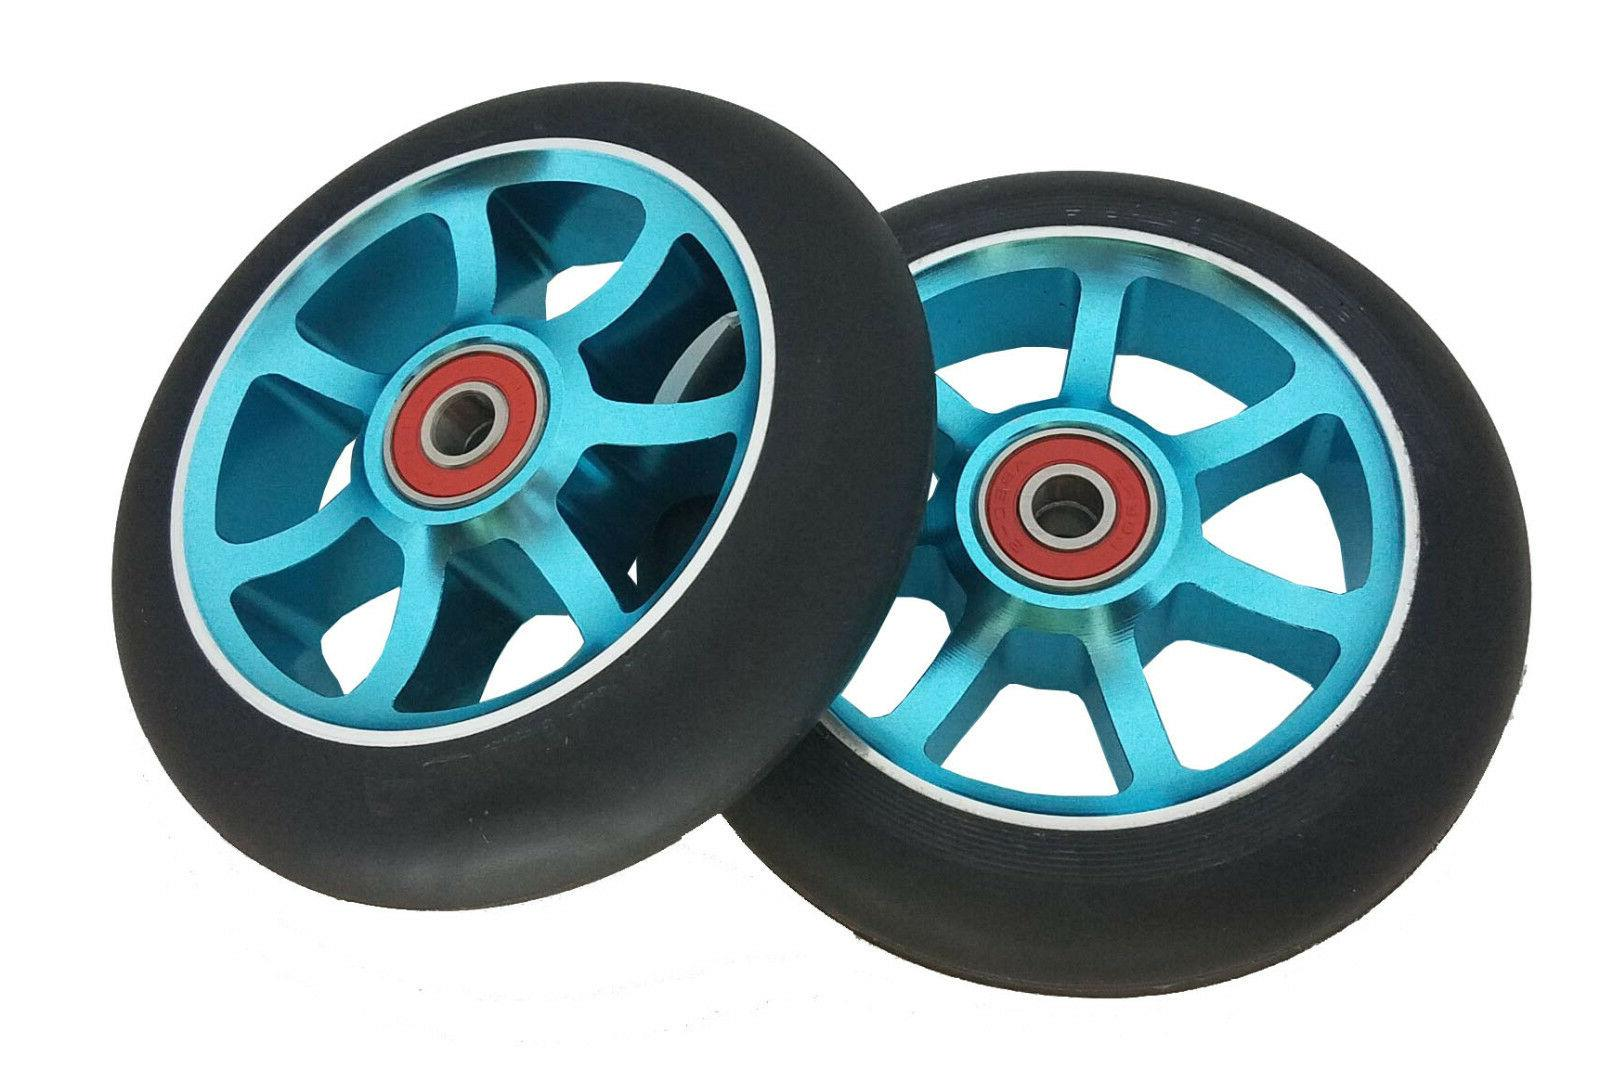 Revolution 7 Spoke Aluminum Pro Wheels | by Pair